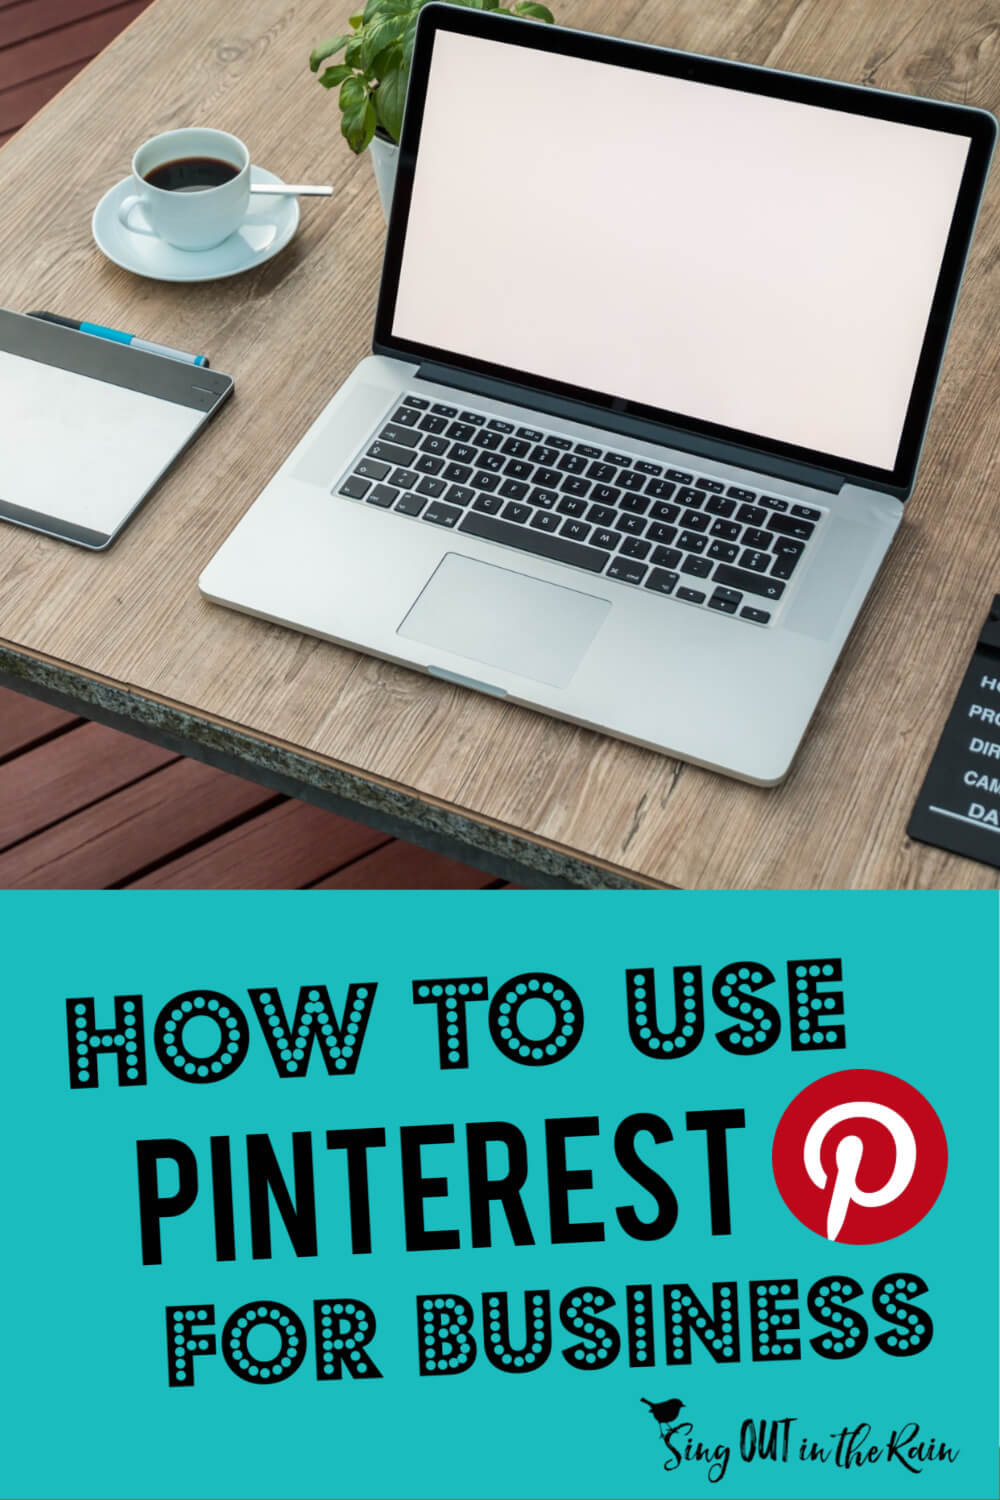 Using Pinterest for marketing your business whether it\'s direct sales, an online boutique or a storefront is essential!  To learn the BEST social media practices - you need the BEST course.  Get the one that high profile bloggers trust.  #pinterest #pinterestcourse